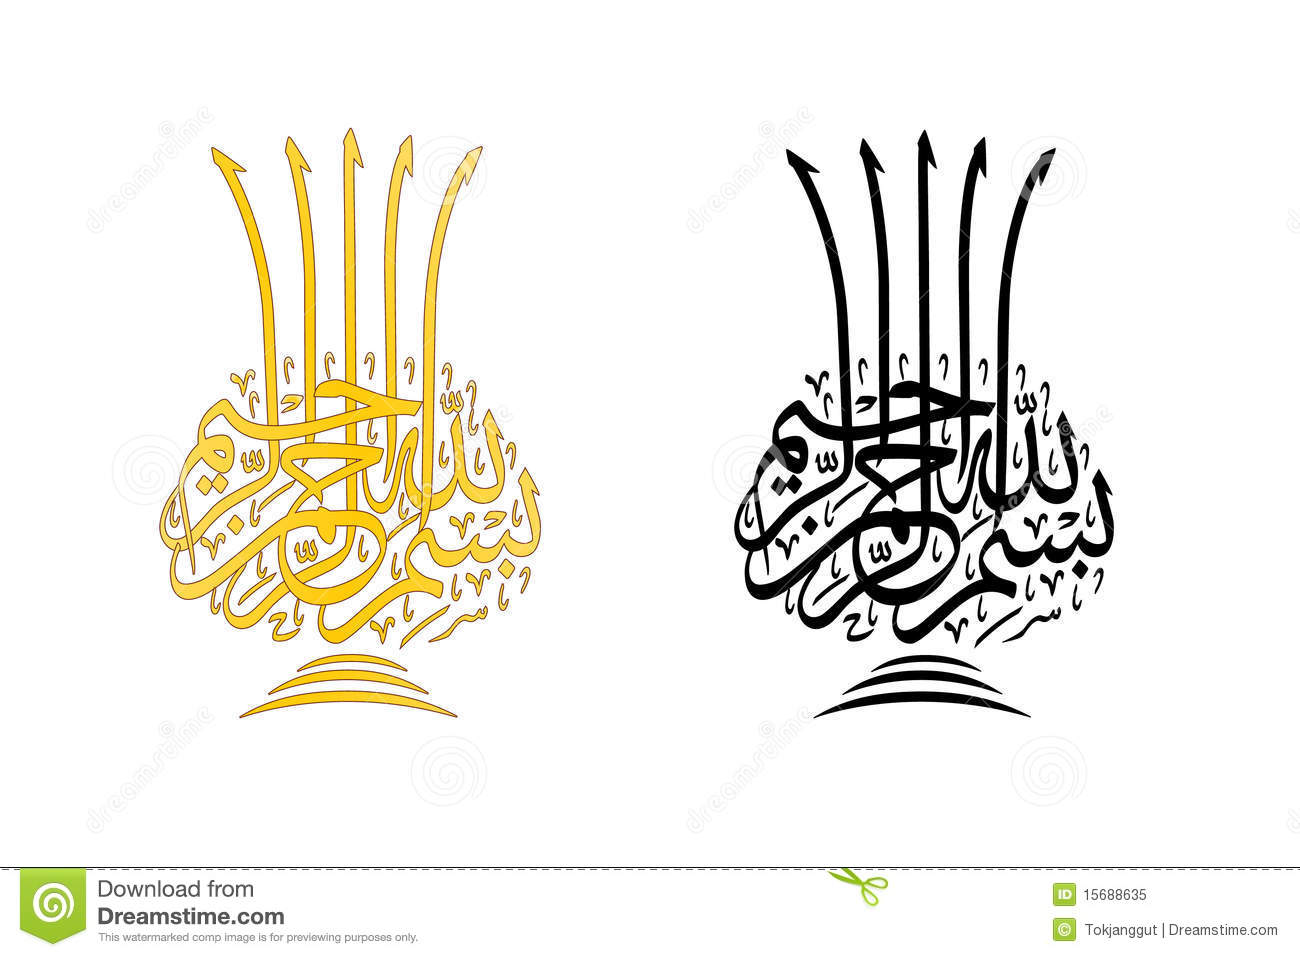 Bismillah In Pottery Shape Royalty Free Stock Photo - Image: 15688635